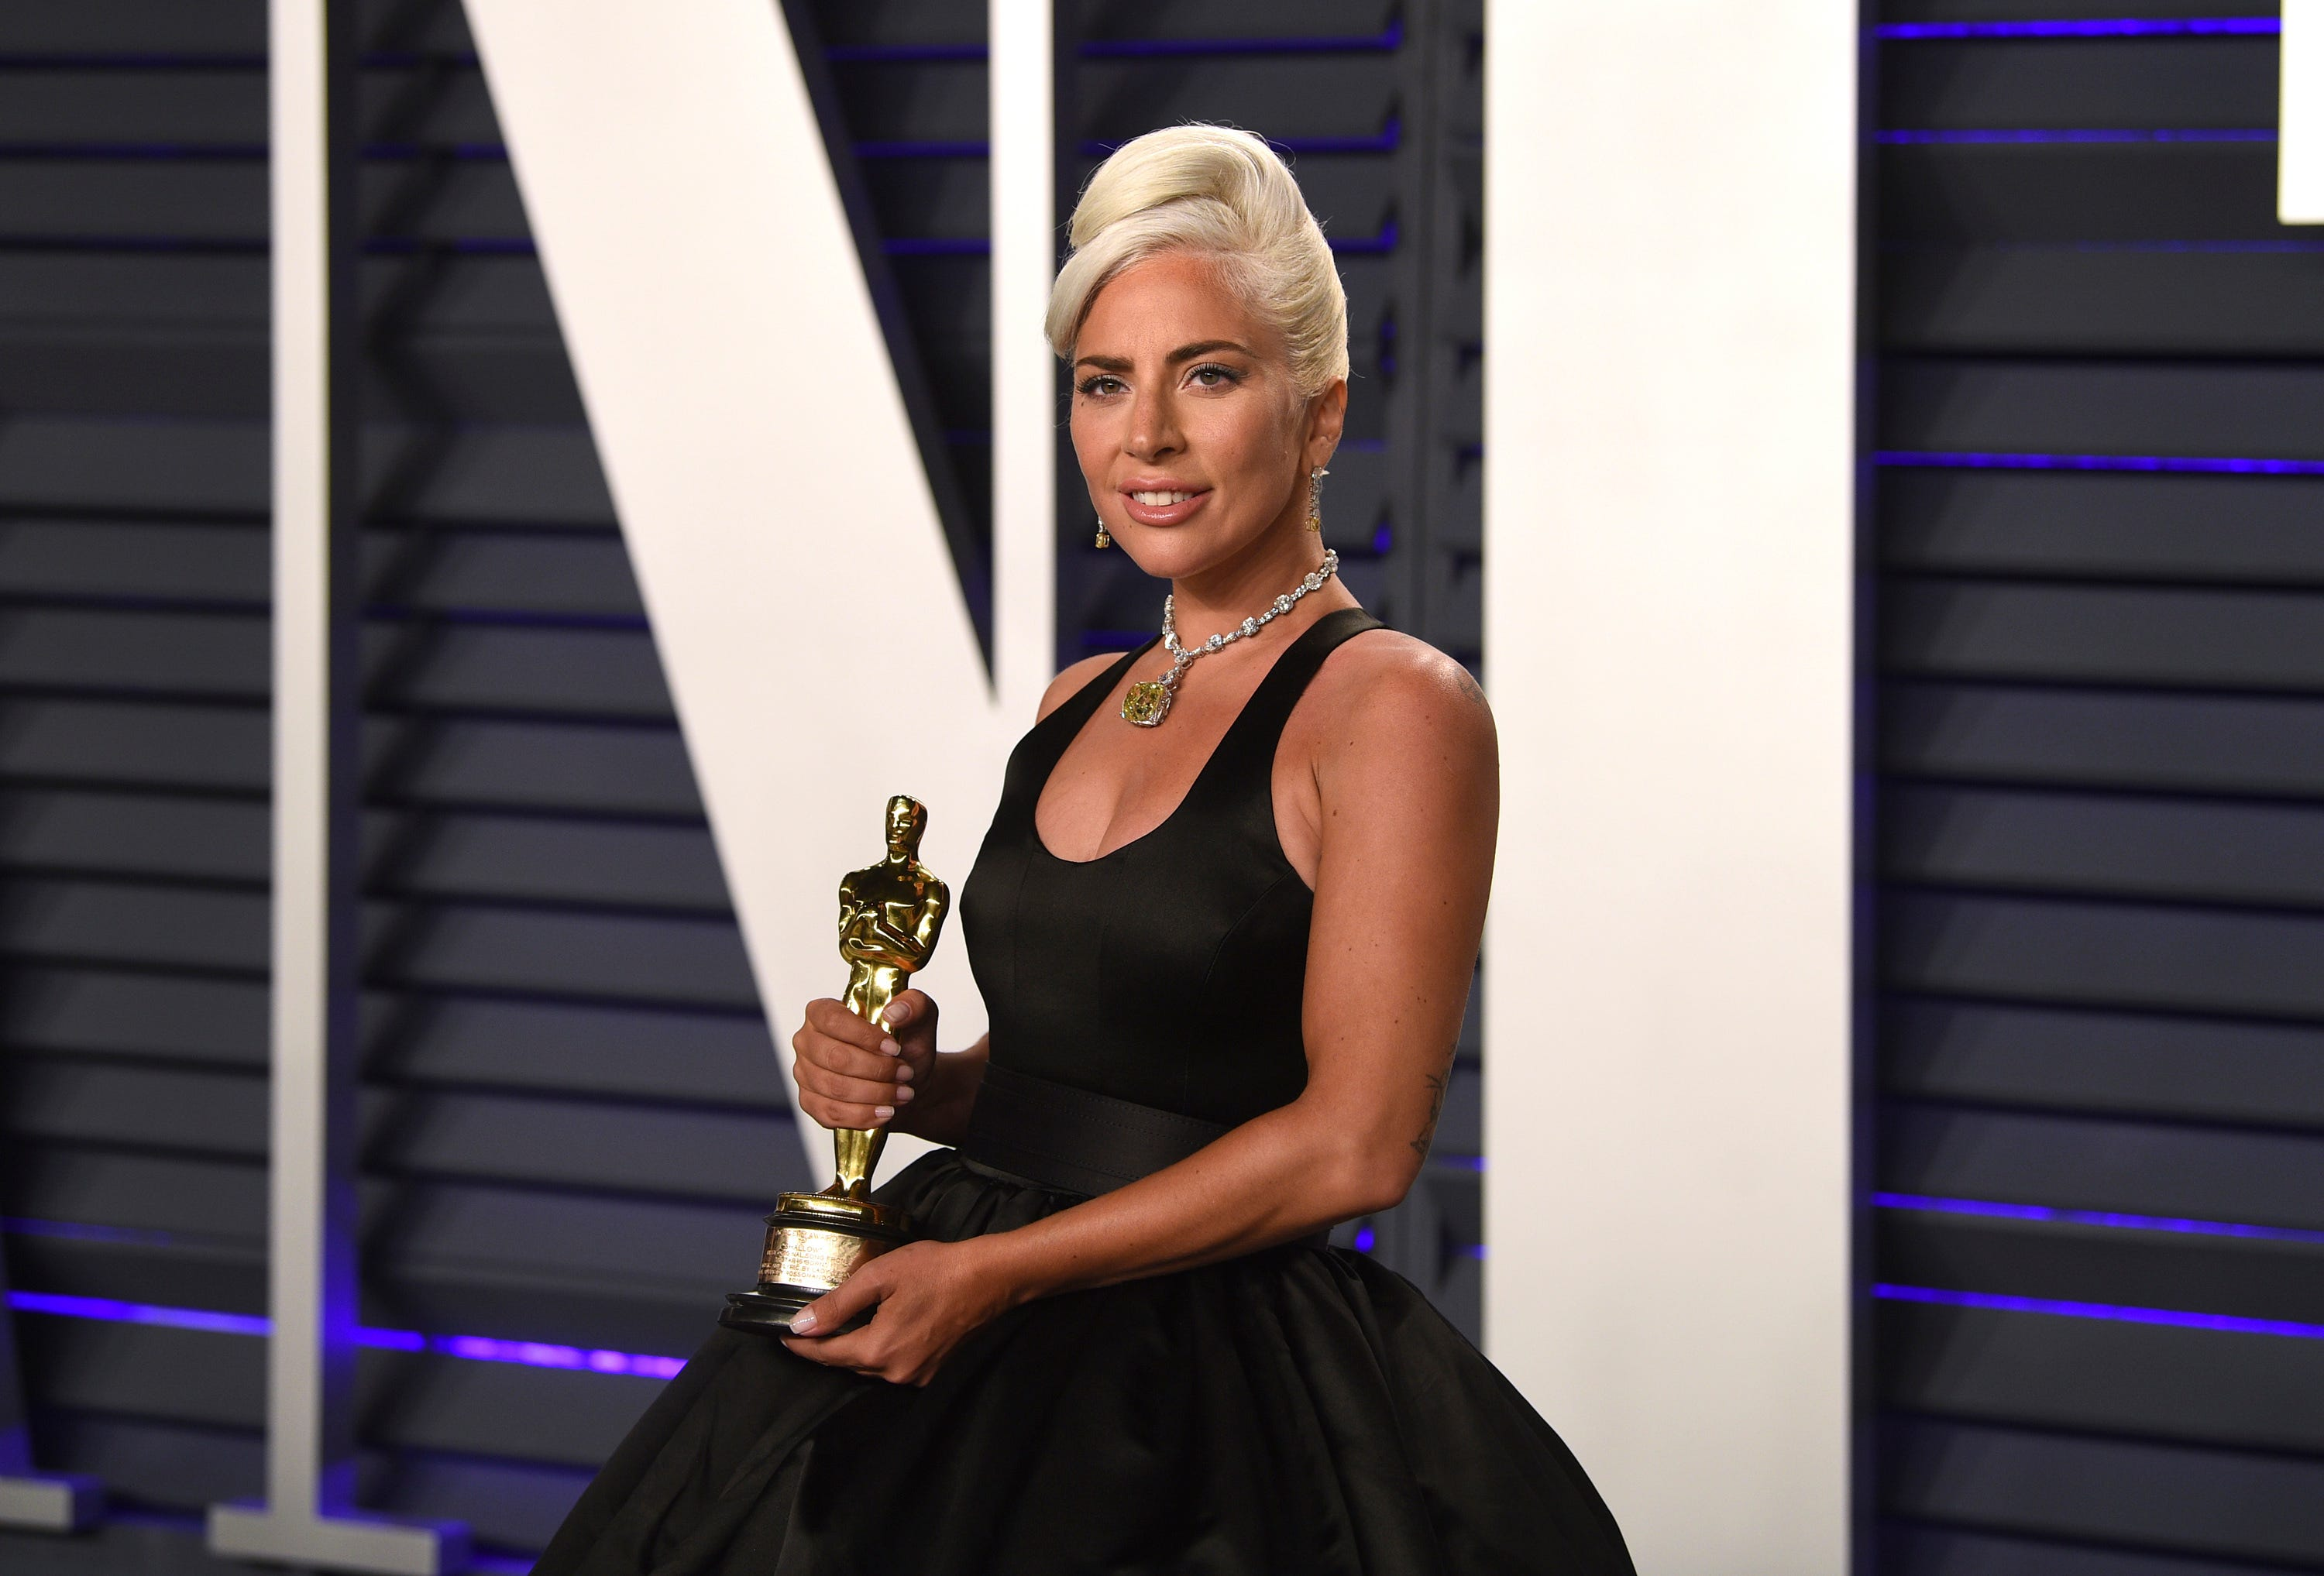 Lady Gaga and Madonna appear to squash years-long beef with iconic post-Oscars embrace